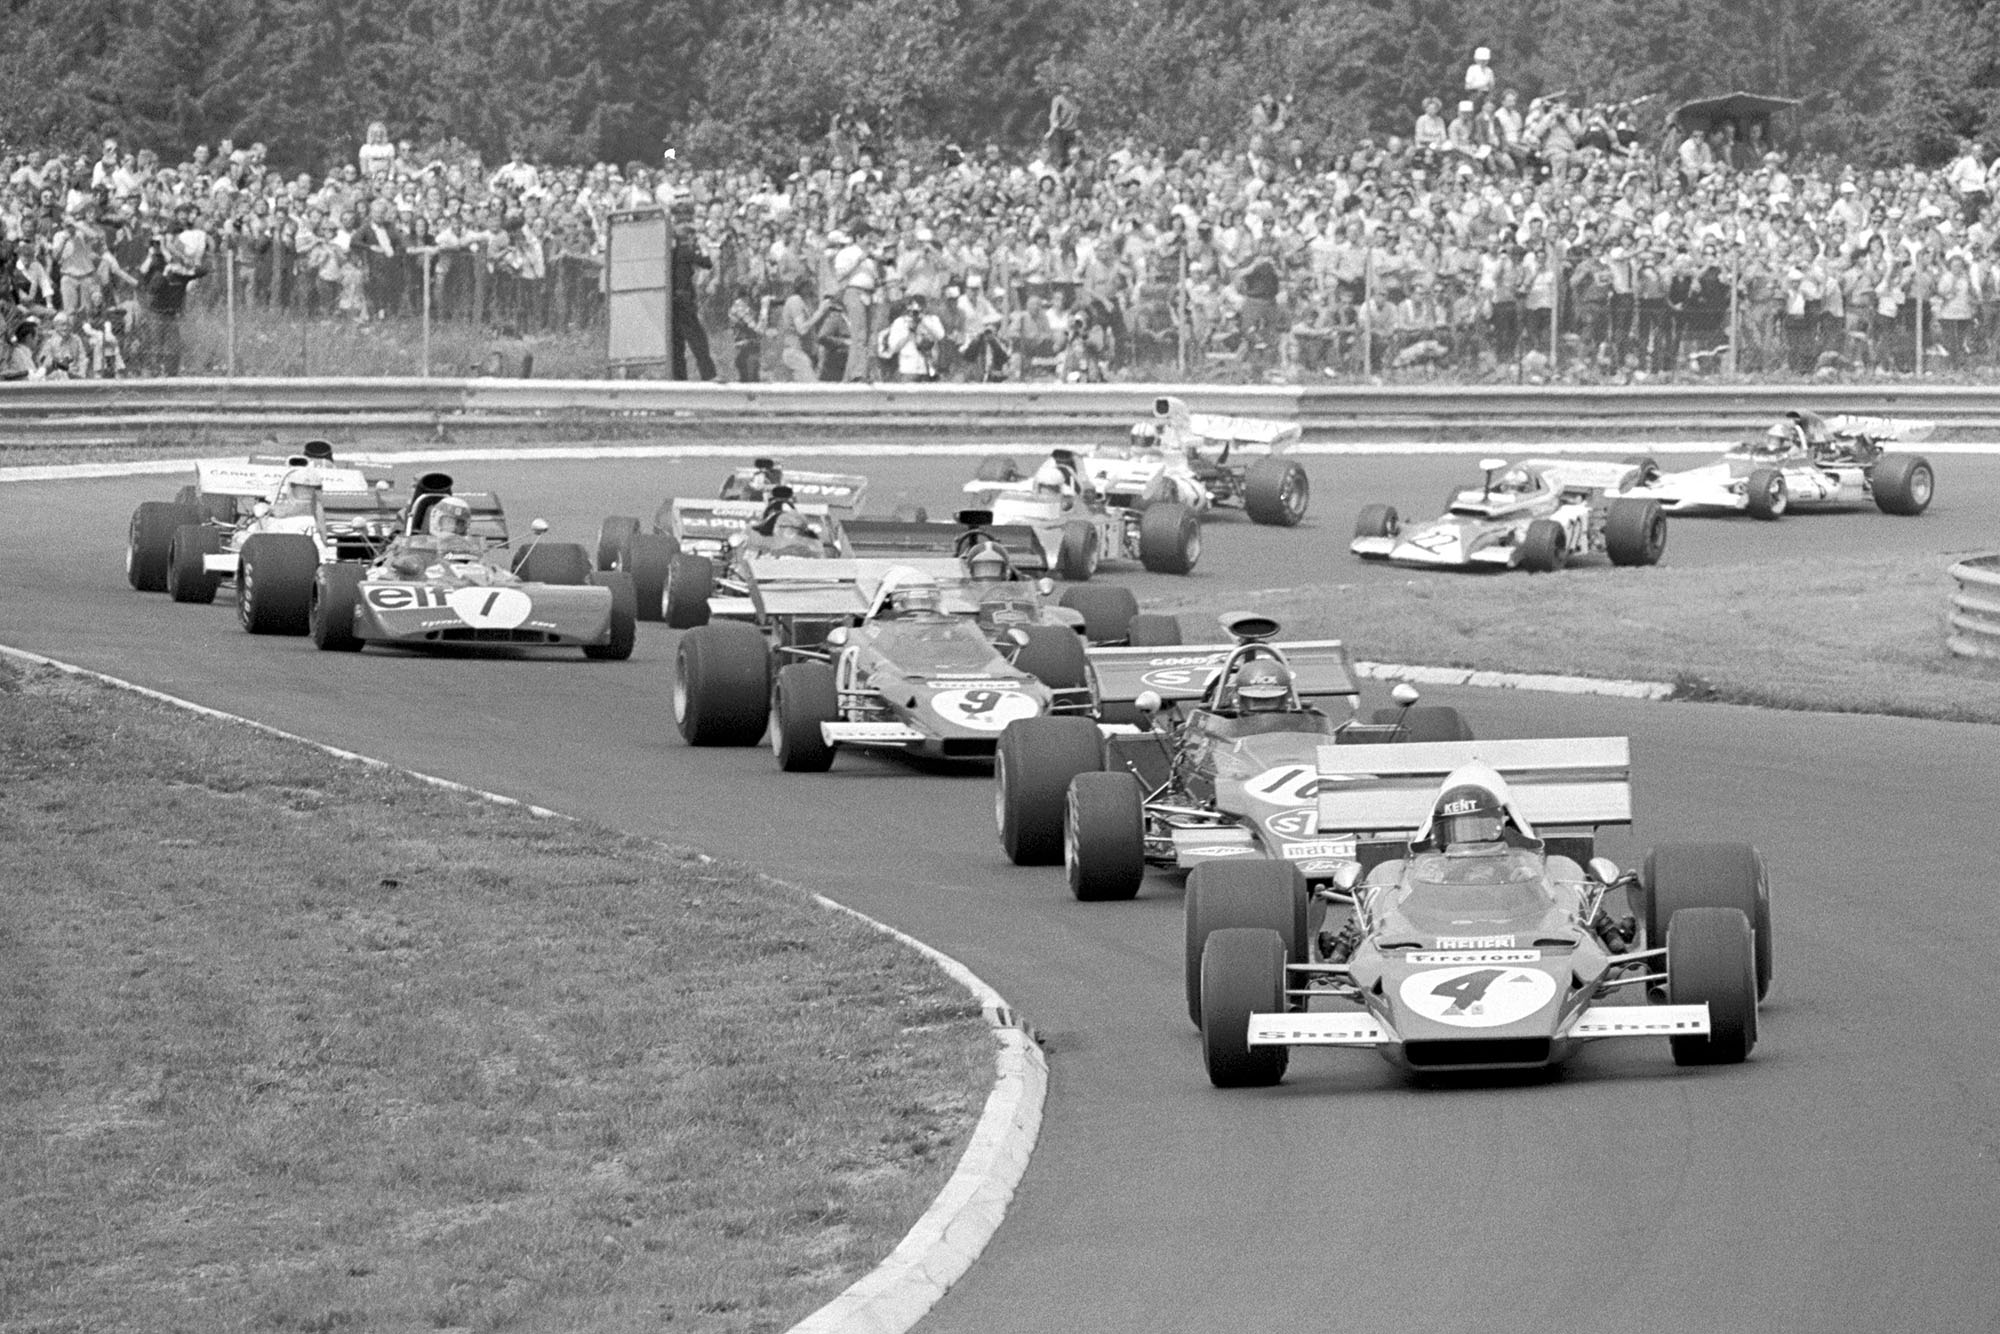 Ferrari's Jacky Ickx leads at the start of the 1972 German Grand Prix, Nurburgring.